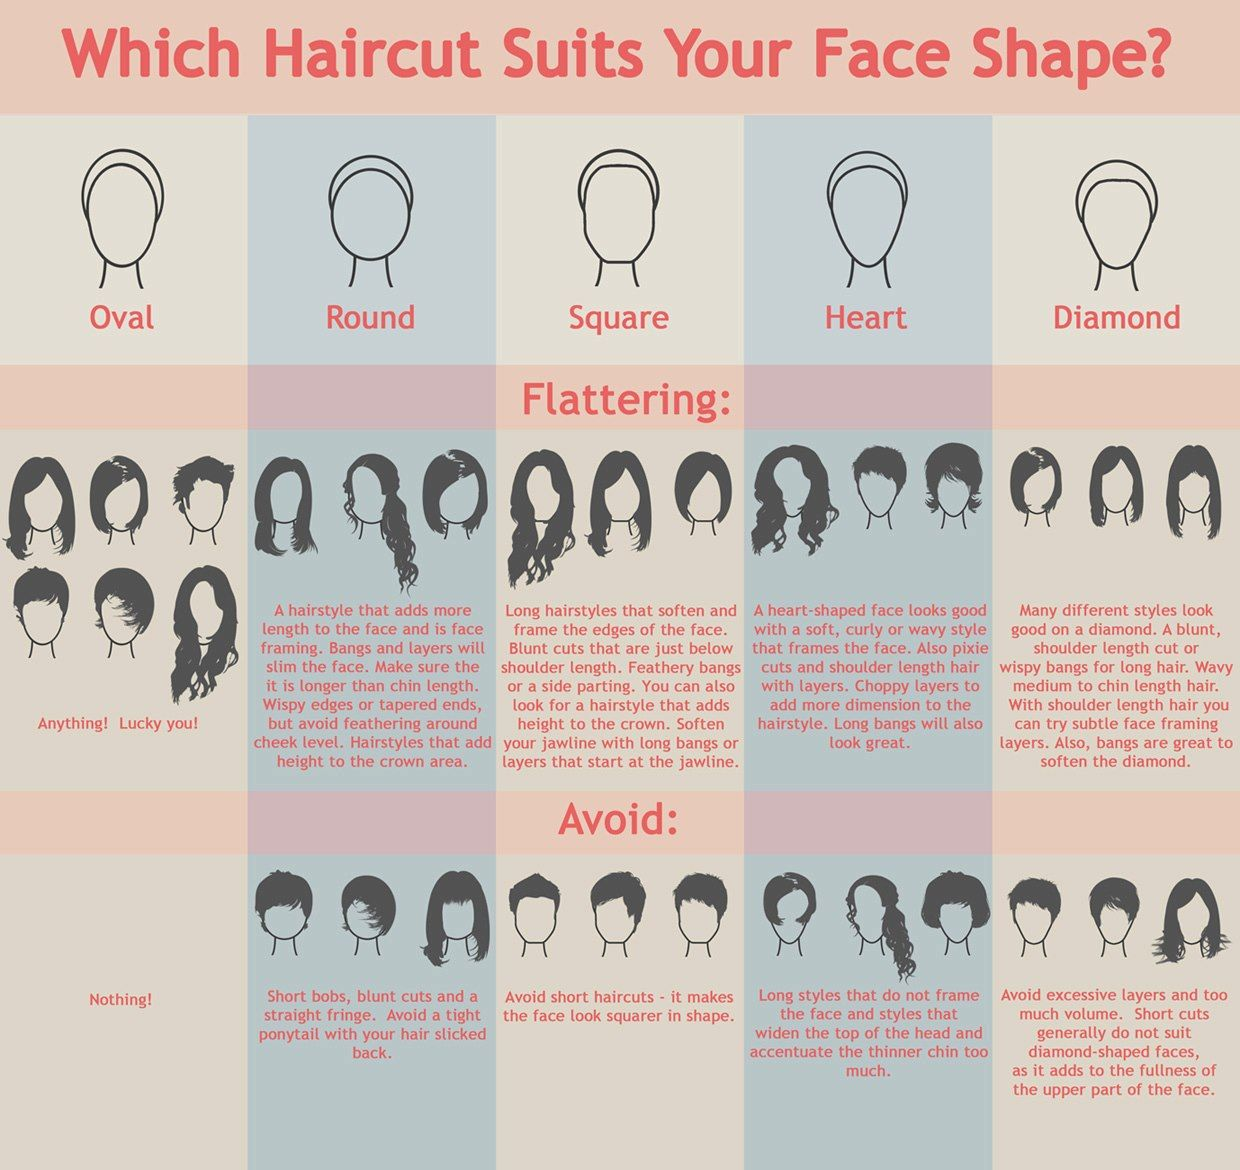 15 tips and tricks on how to flatter your face shape | hair | hair